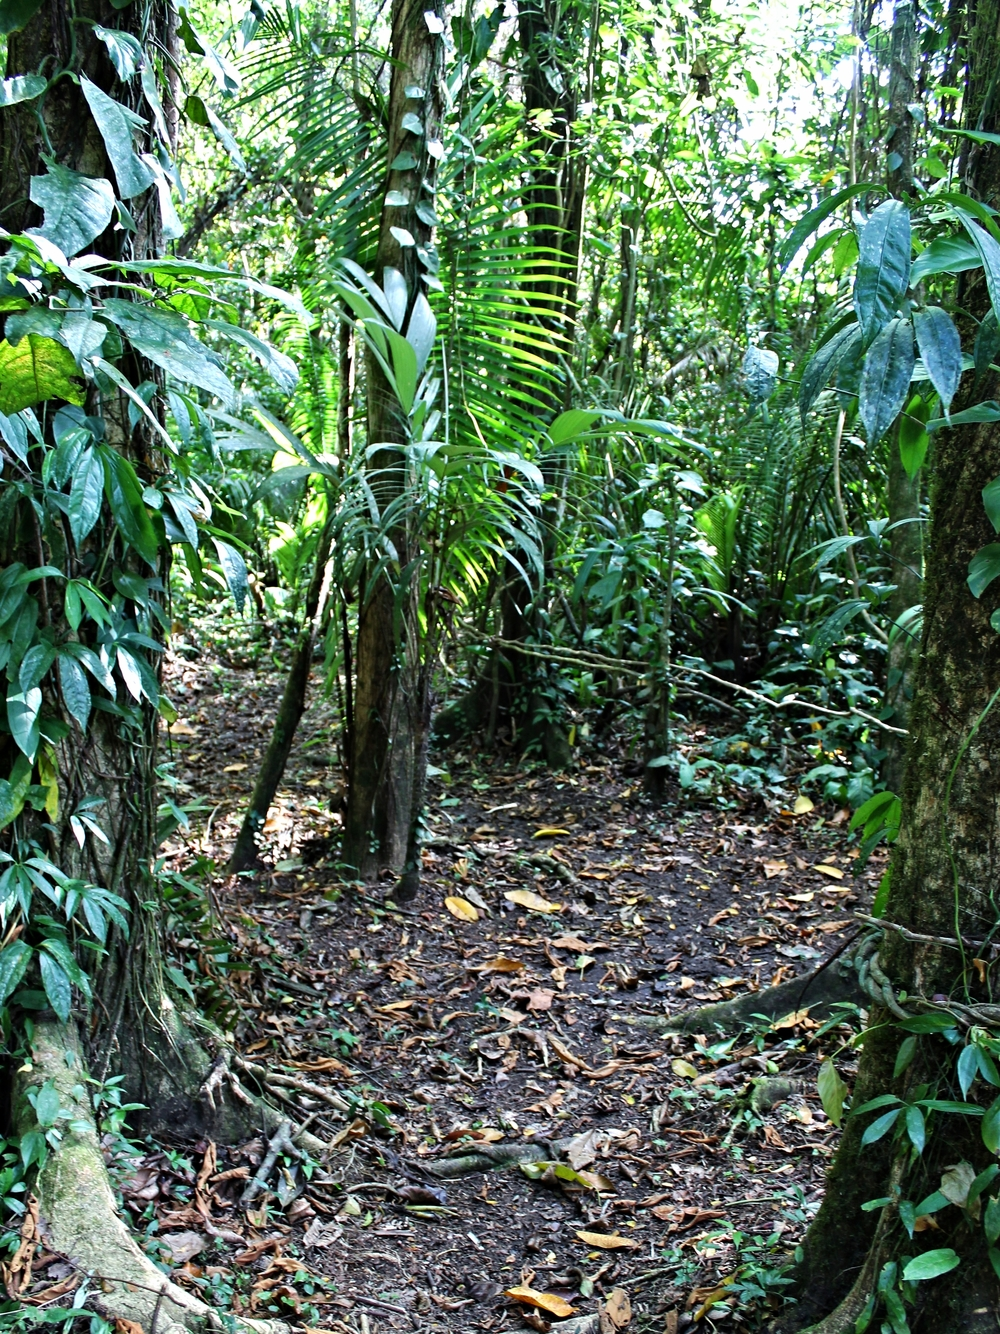 Cockscomb Basin Wildlife Sanctuary - Belize Jungle Vacation - Belize Vacation Packages - SabreWing Travel - Rainforest